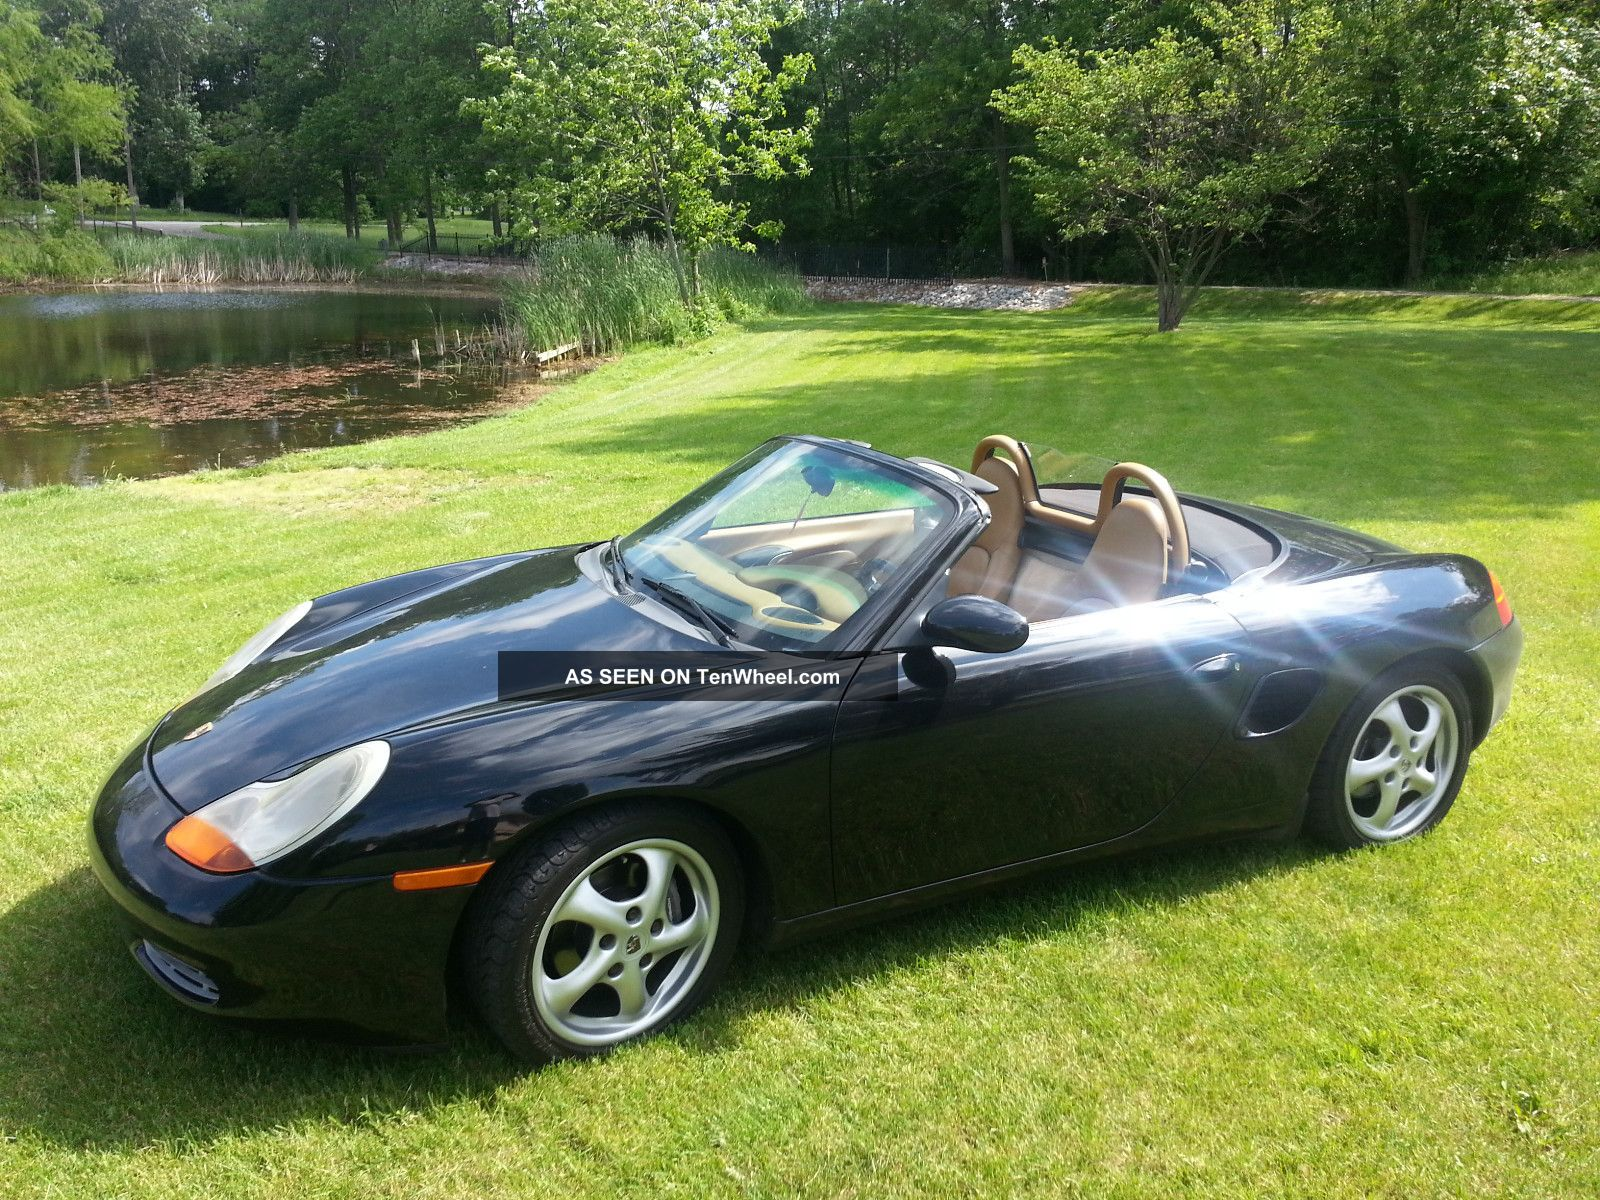 Porsche Boxster Roadster Convertible Door L Lgw on 2000 Chrysler Sebring Owners Manual